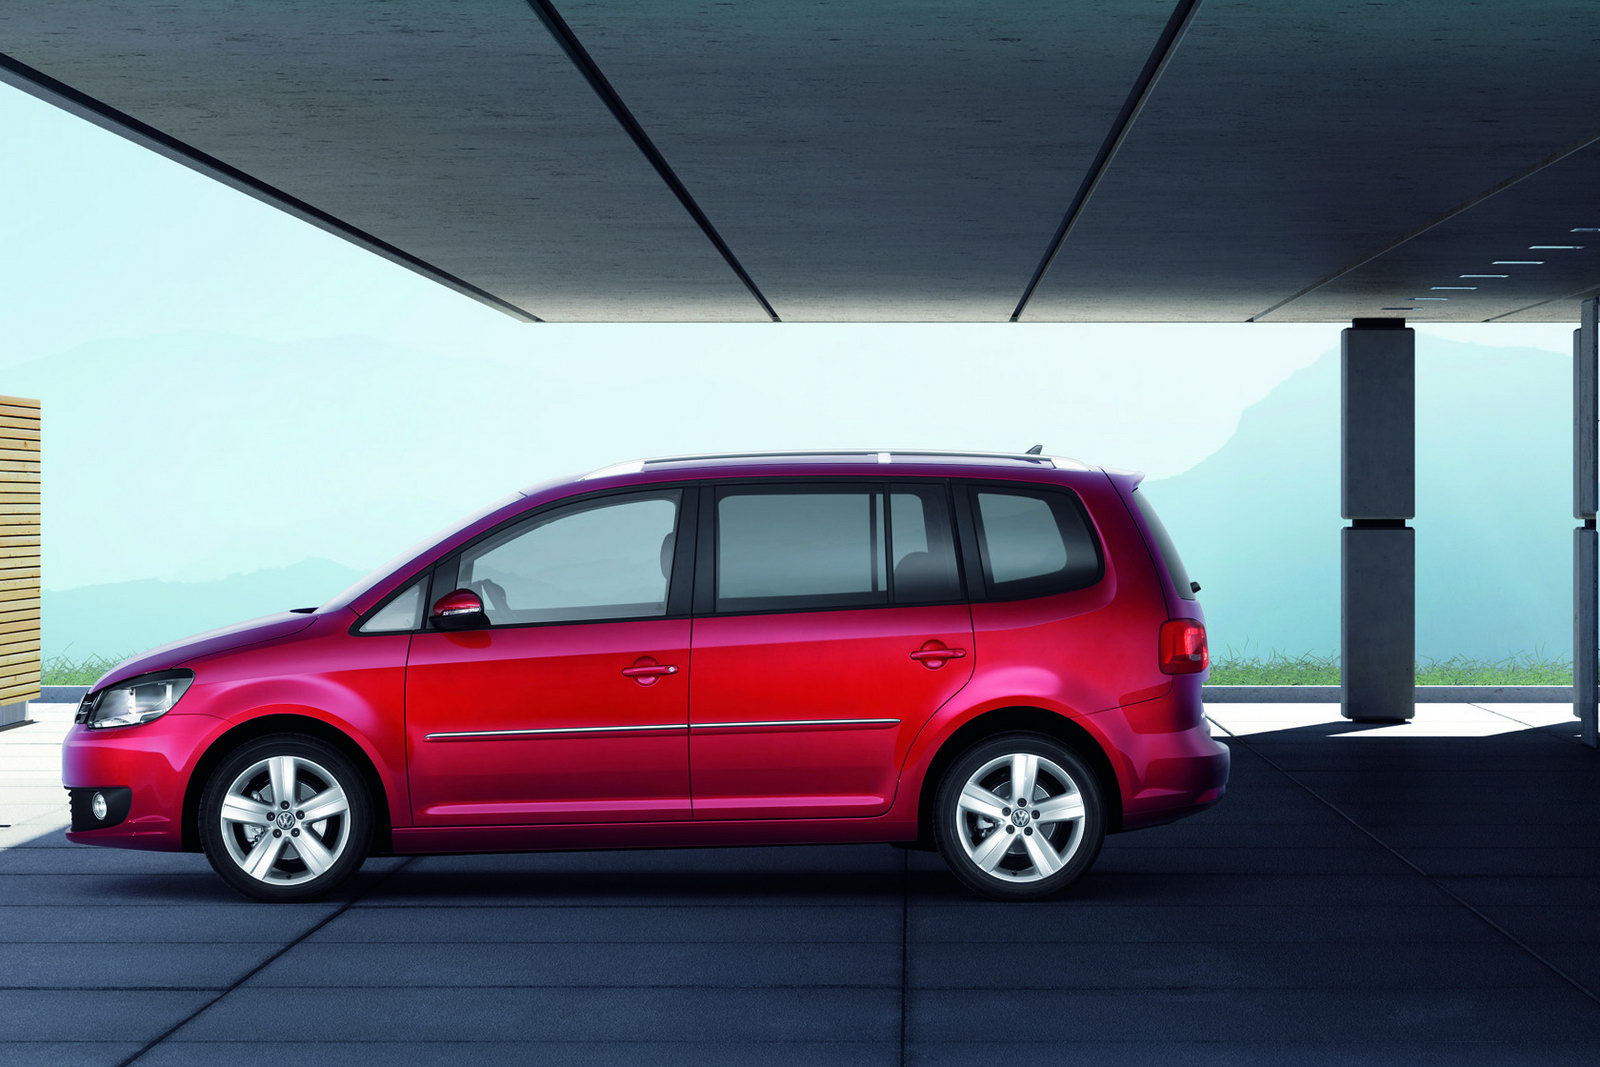 Volkswagen Group Latest Models >> 2011 Volkswagen Touran 7-Seater MPV Receives Second Mid ...